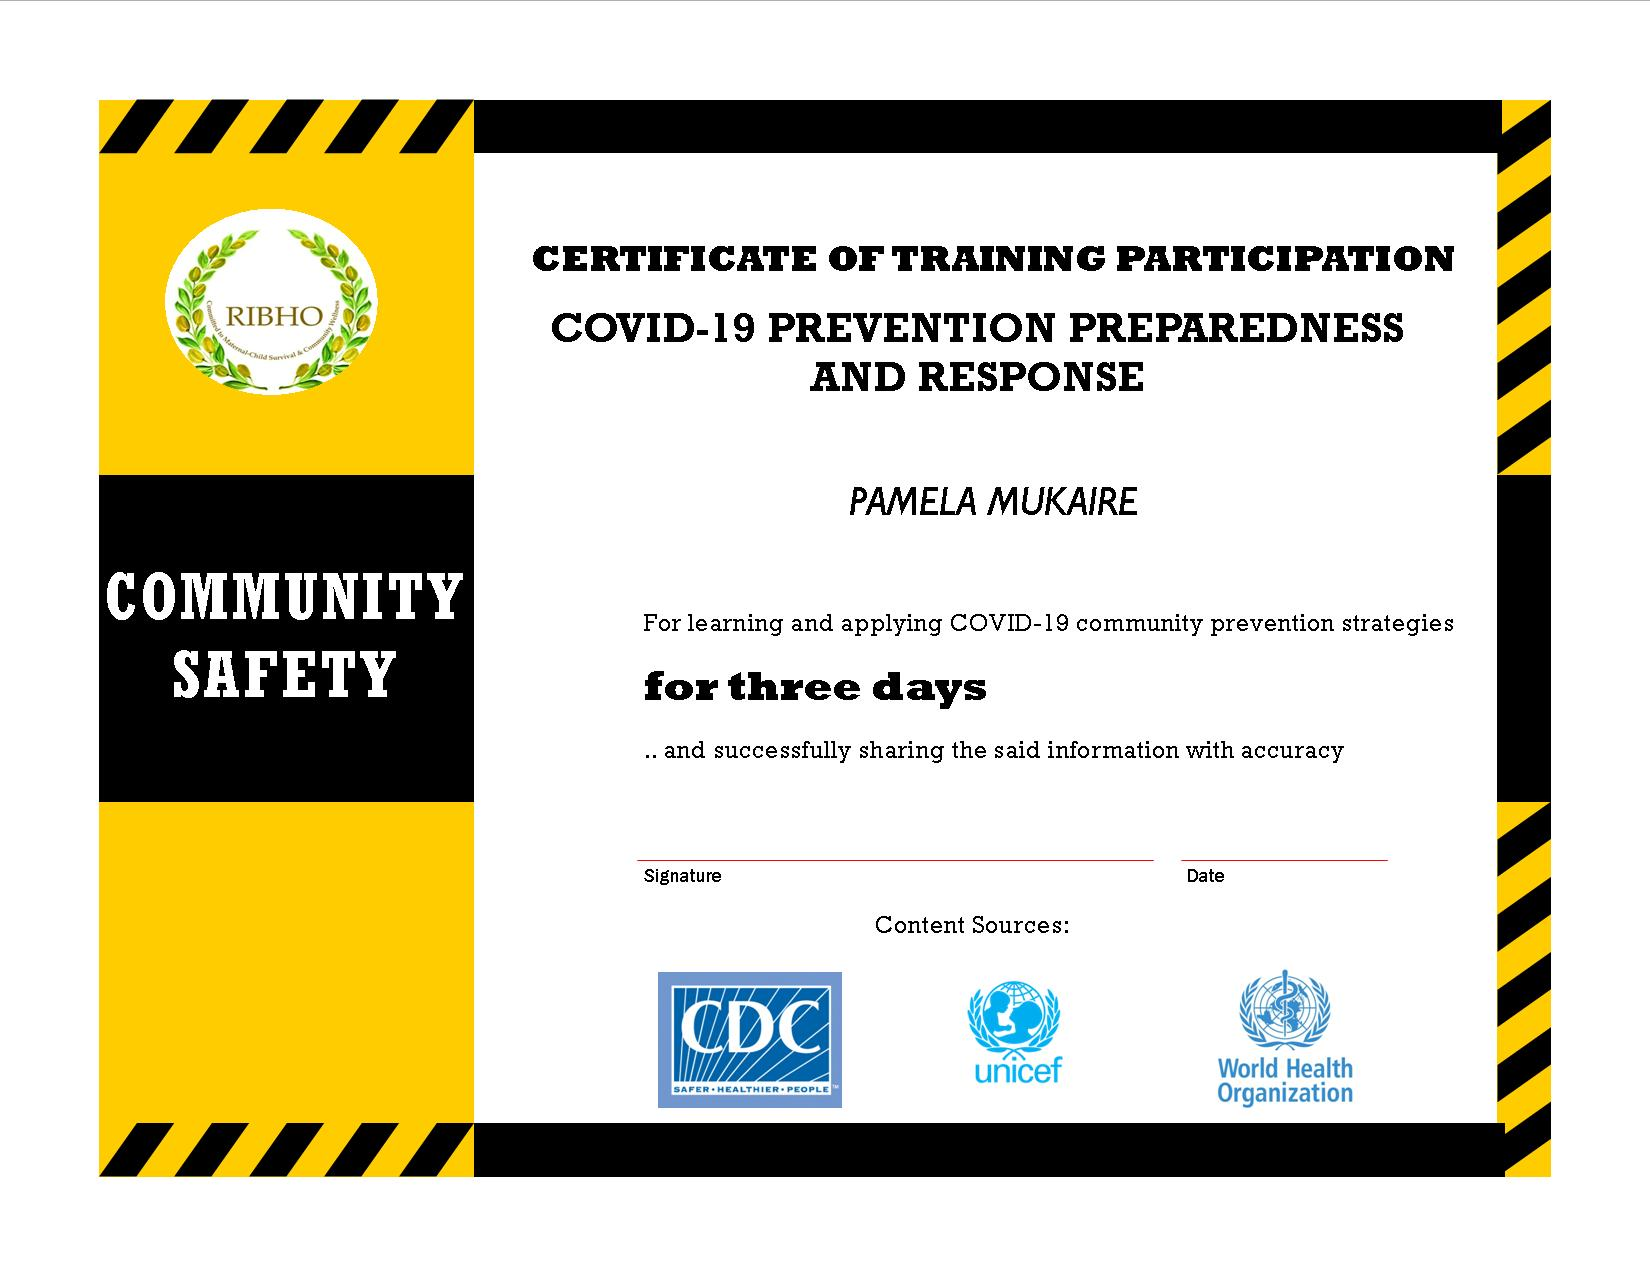 RIBHO COVID-19 Certificate - April 2020 Training